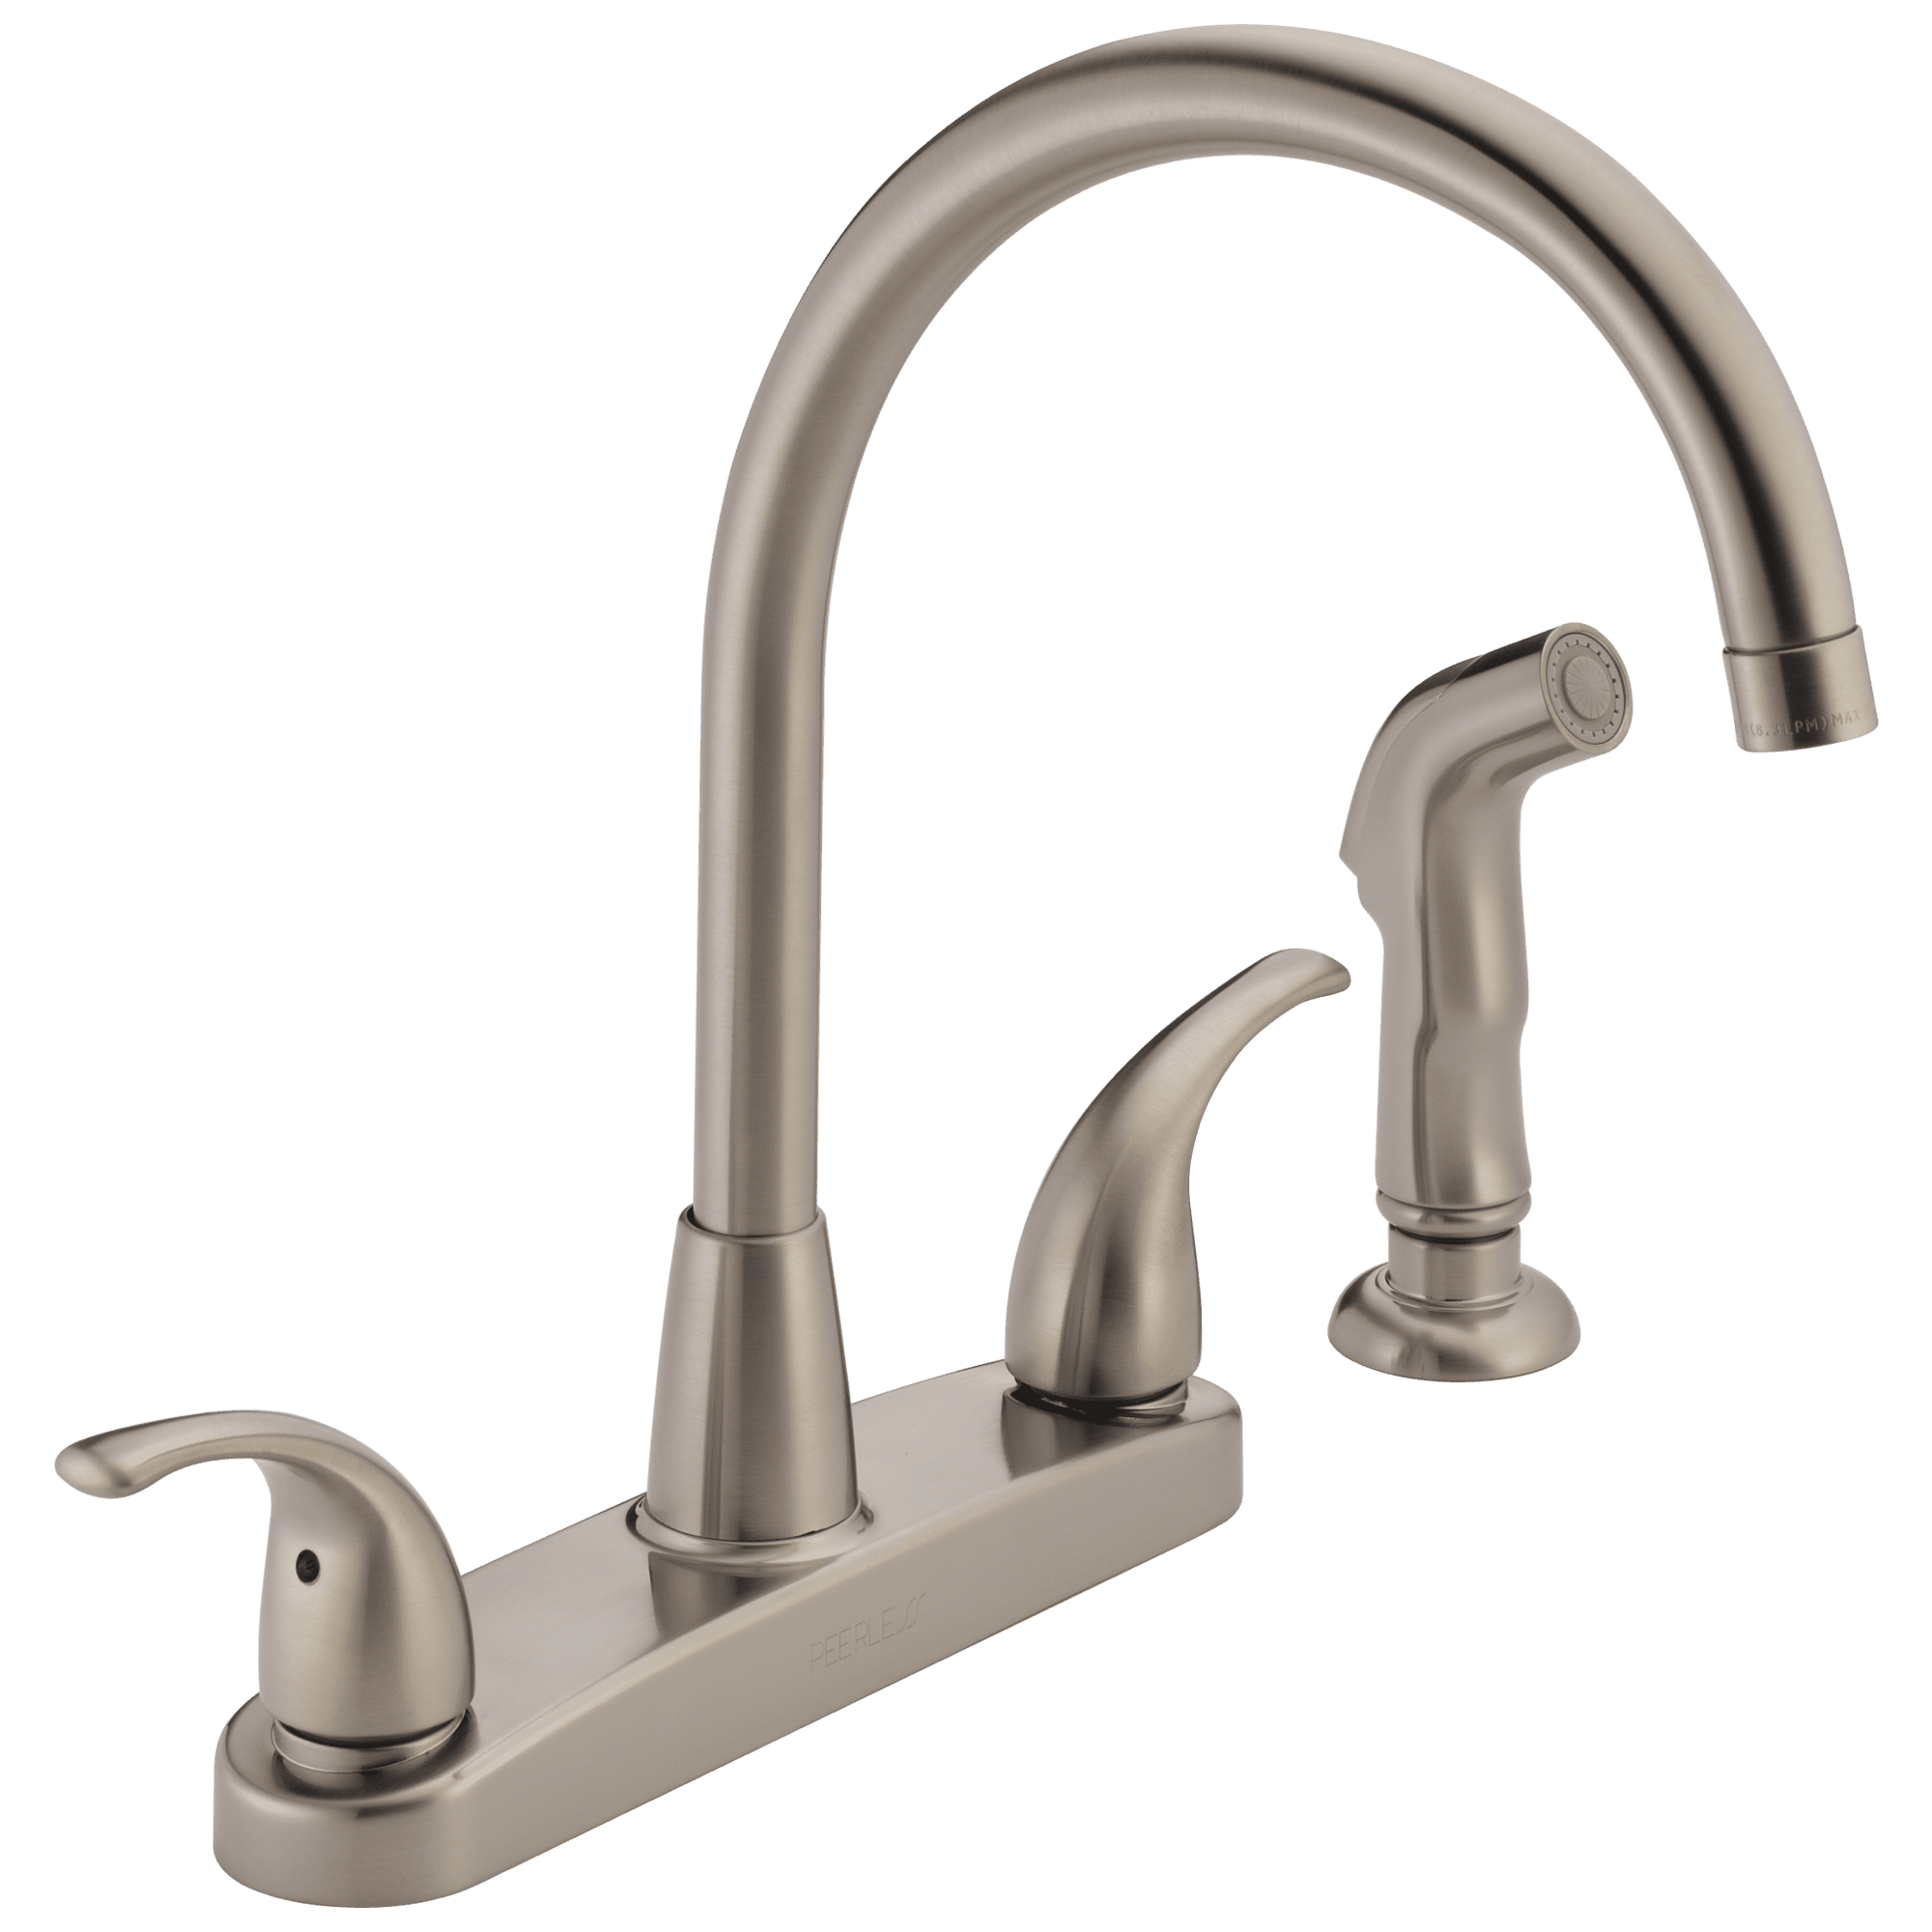 Peerless Tunbridge Two Handle Deck-Mount Kitchen Faucet in Stainless P299578LF-SS